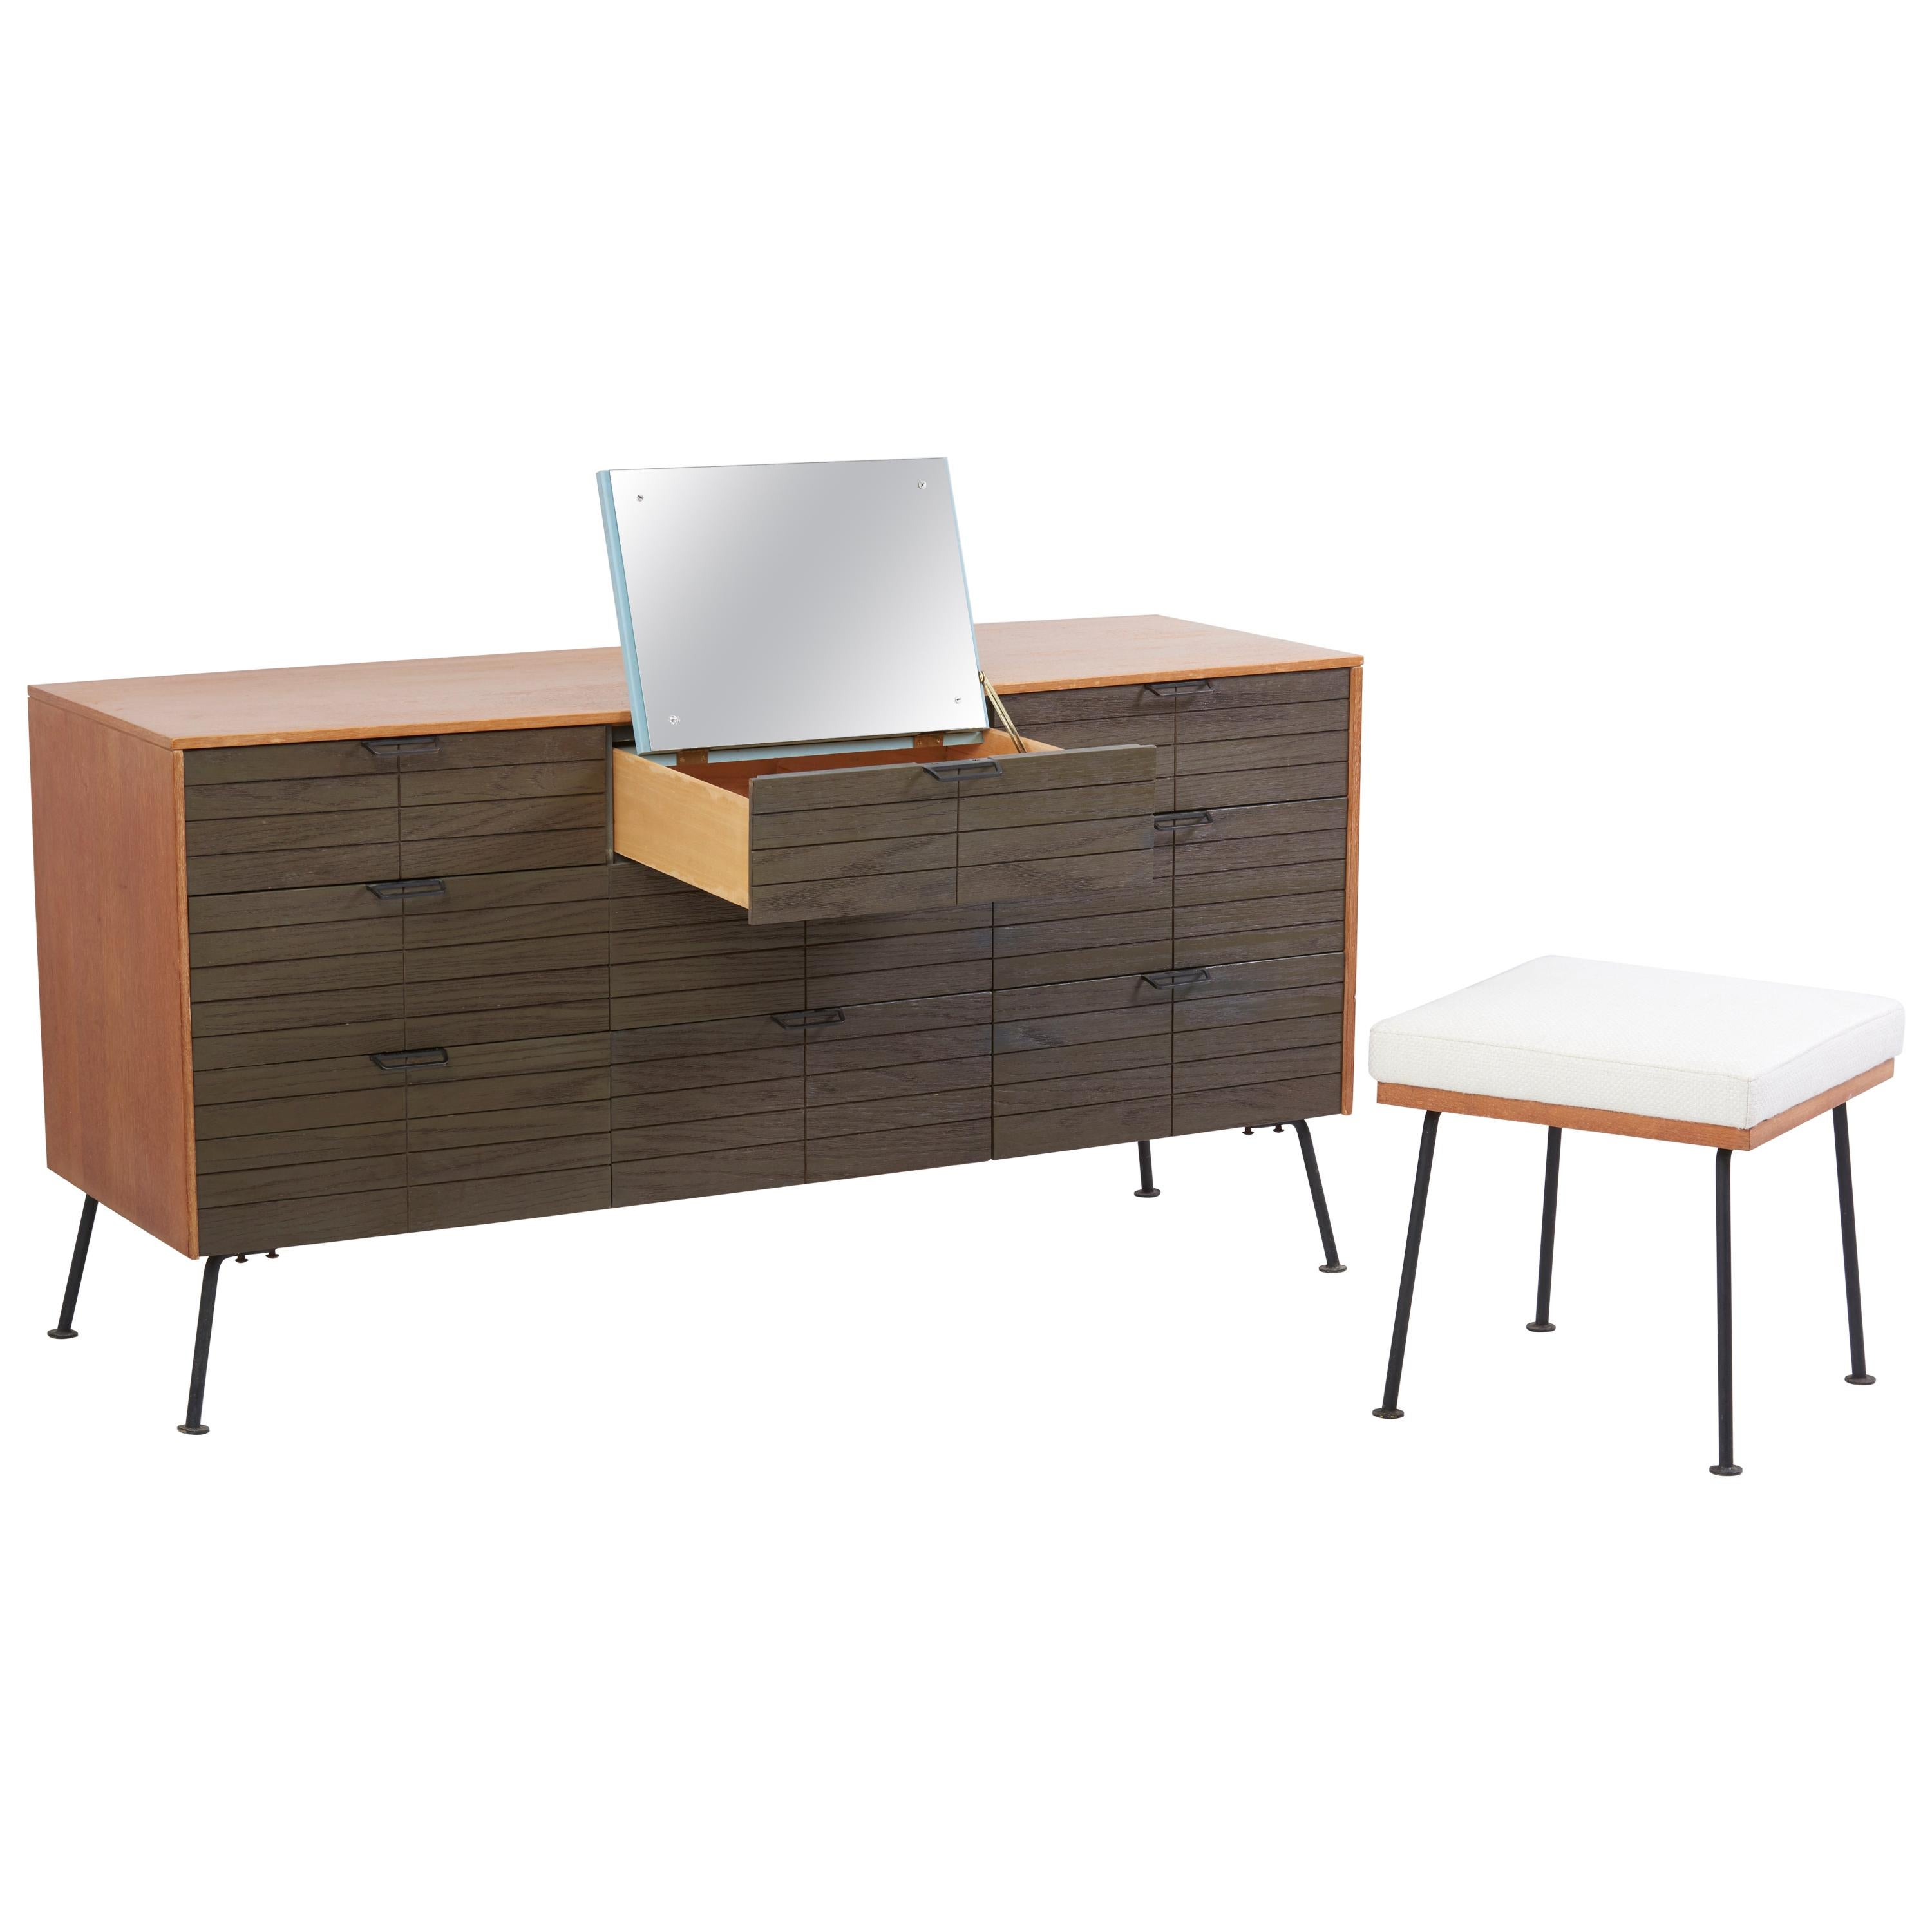 Dresser with Stool by Raymond Loewy for Mengel Furniture Company, Us, 1950s